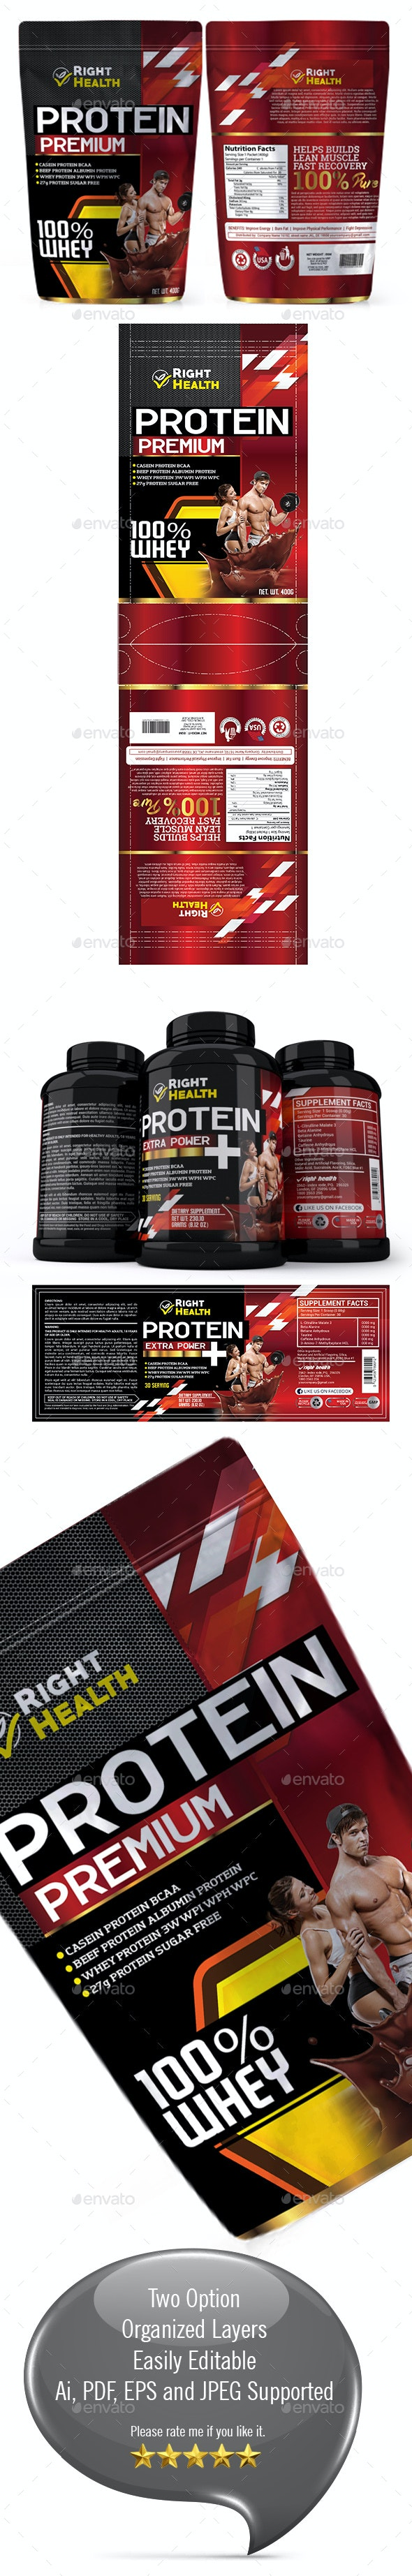 Supplement Label Template Vol 28 - Packaging Print Templates